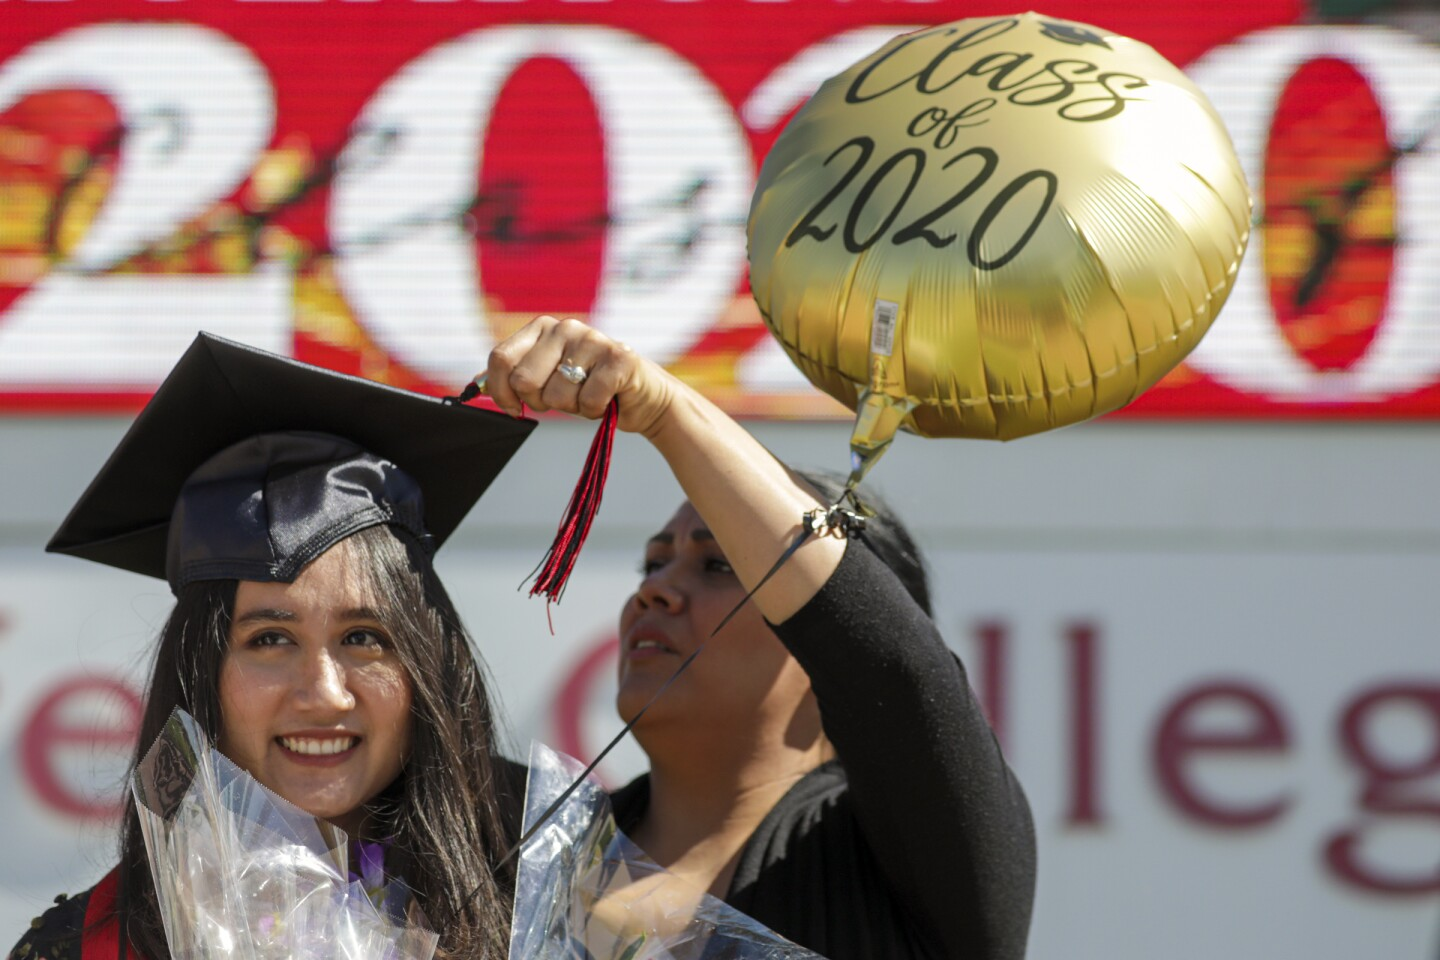 "RANCHO CUCAMONGA, CA - MAY 20: Melissa Gomes, right, fixes the tassel as new graduate Sarah Anggraini gets ready for a photo at the marquee of Chaffey Colleges that held a drive through graduation on Wednesday, May 20, 2020 in Rancho Cucamonga, CA. Chaffey College handed out 600 ""Grad Bags"" at the Rancho Cucamonga campus, and around 170 each at the Chino and Fontana campuses. Chaffey will award about 6,400 degrees and certificates to the Class of 2020, the most awarded in the college's history. (Irfan Khan / Los Angeles Times)"